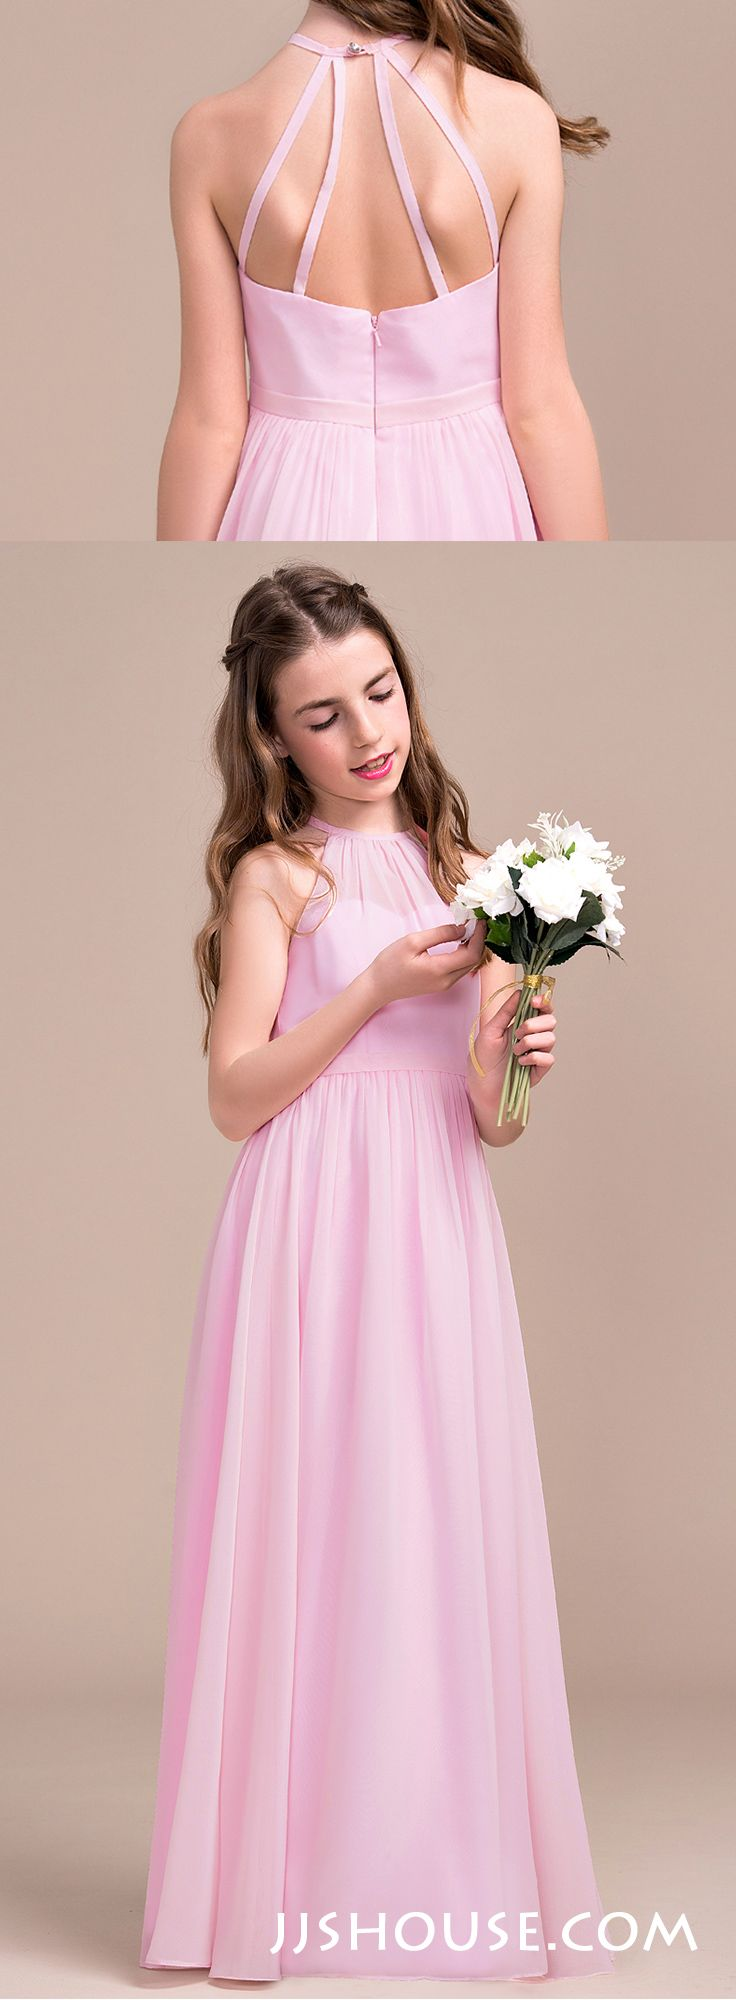 Best 25 junior bridesmaid dresses ideas on pinterest junior this dress is a lovely dressed up look for junior bridesmaids jjshouse ombrellifo Images